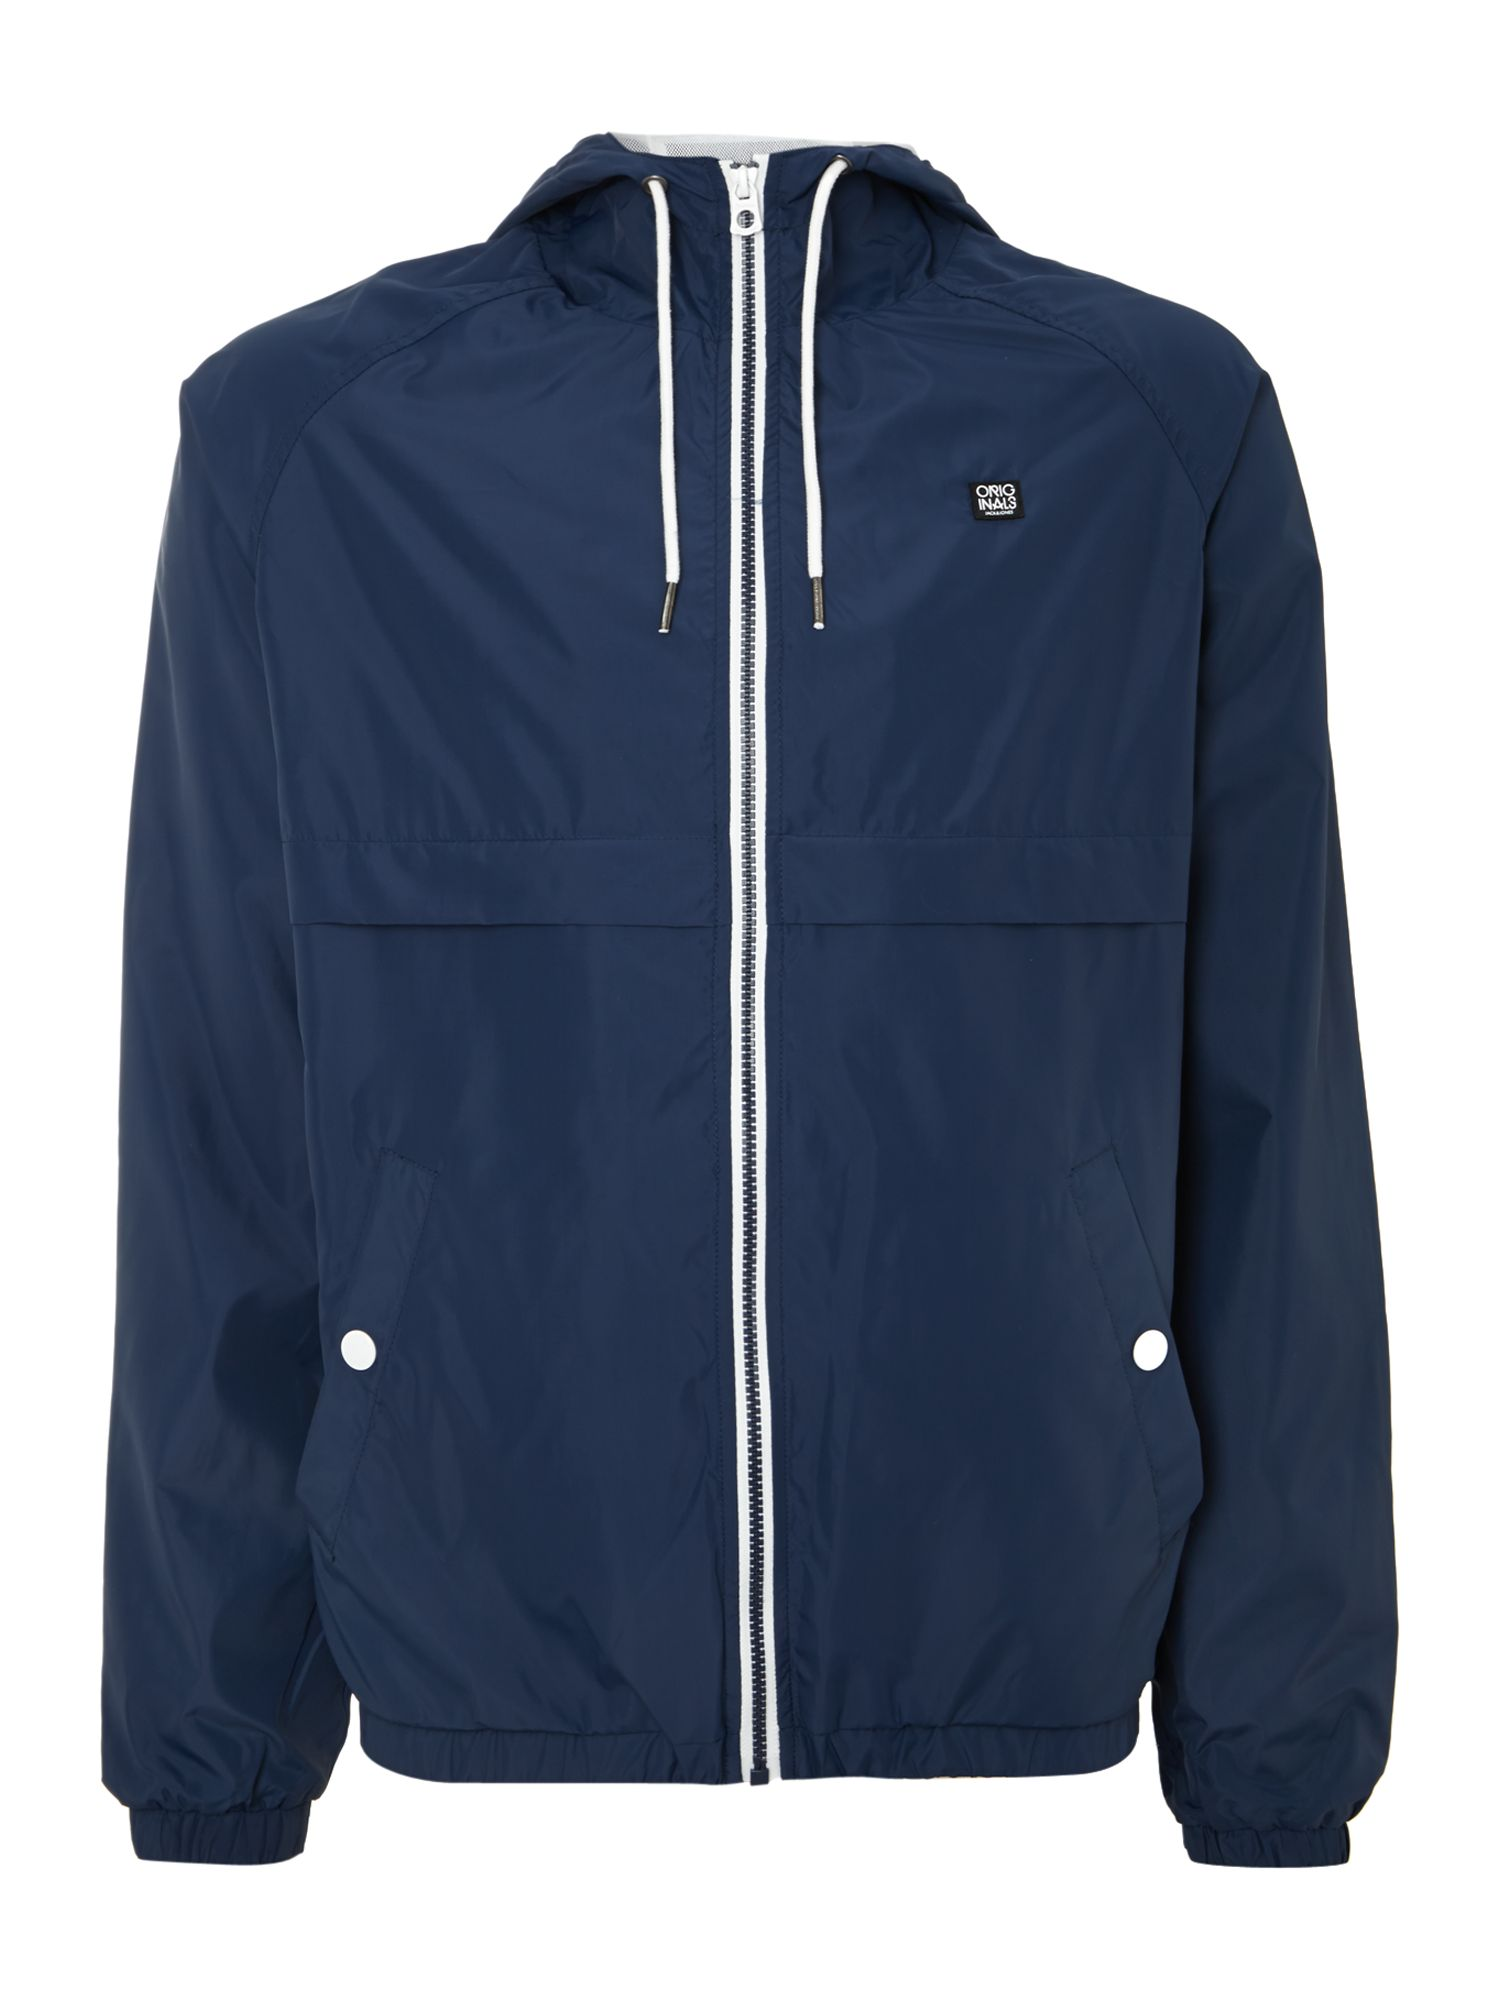 Lightweight zip through jacket